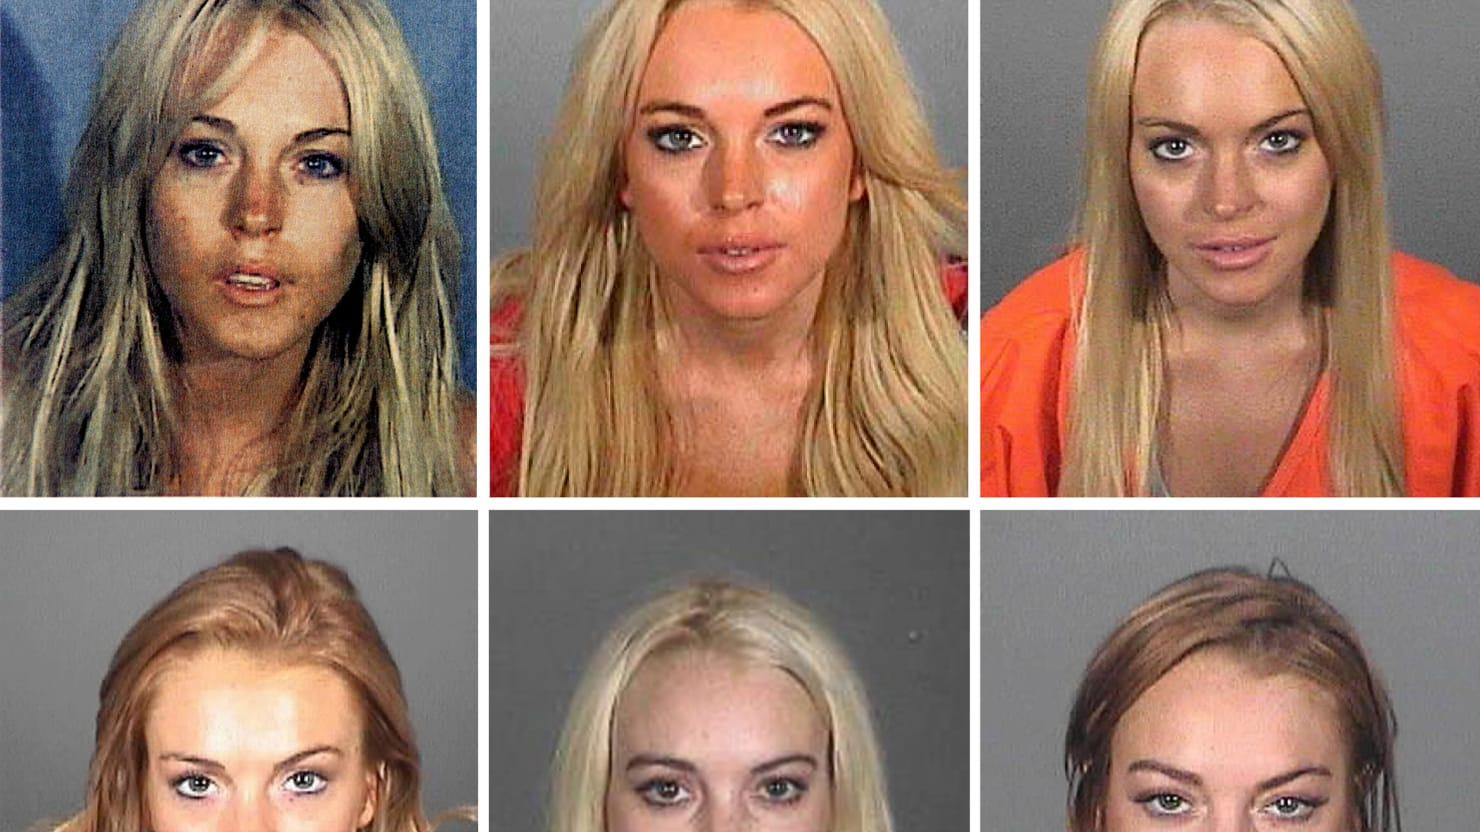 Lindsay Lohan and Rehab: A Look at Their Long-Term ...